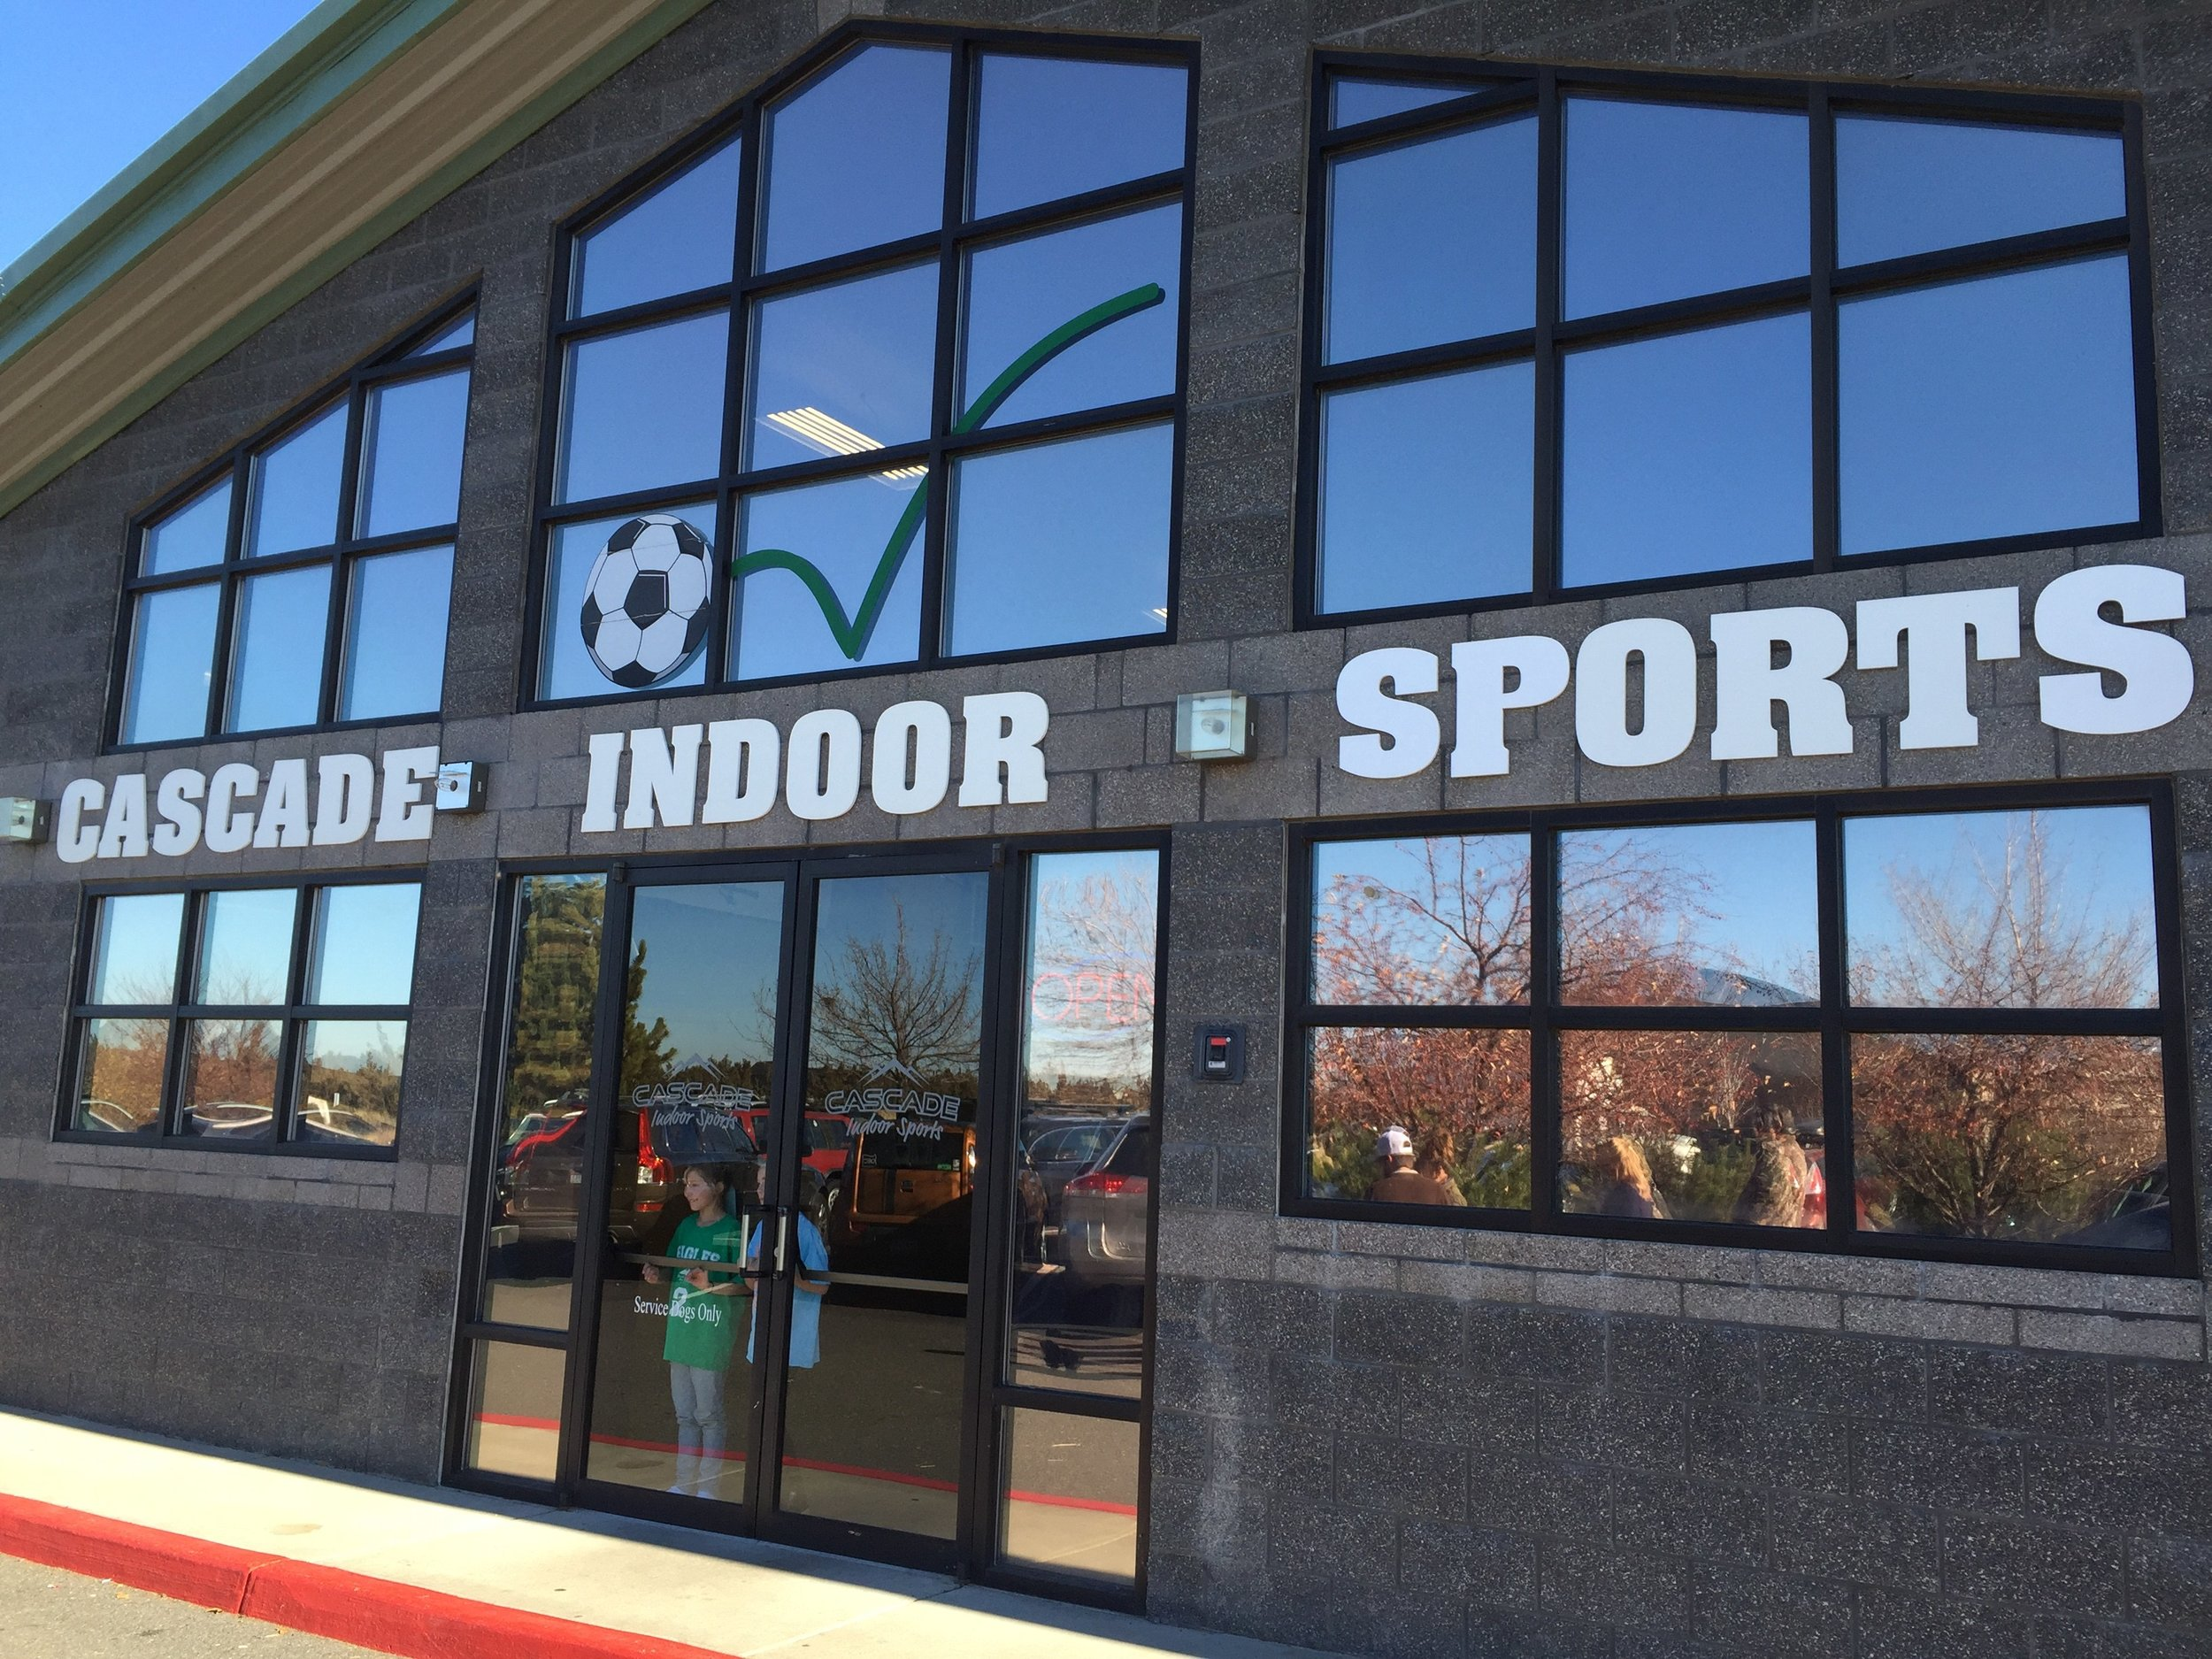 Cascade Indoor Sports_3.jpg